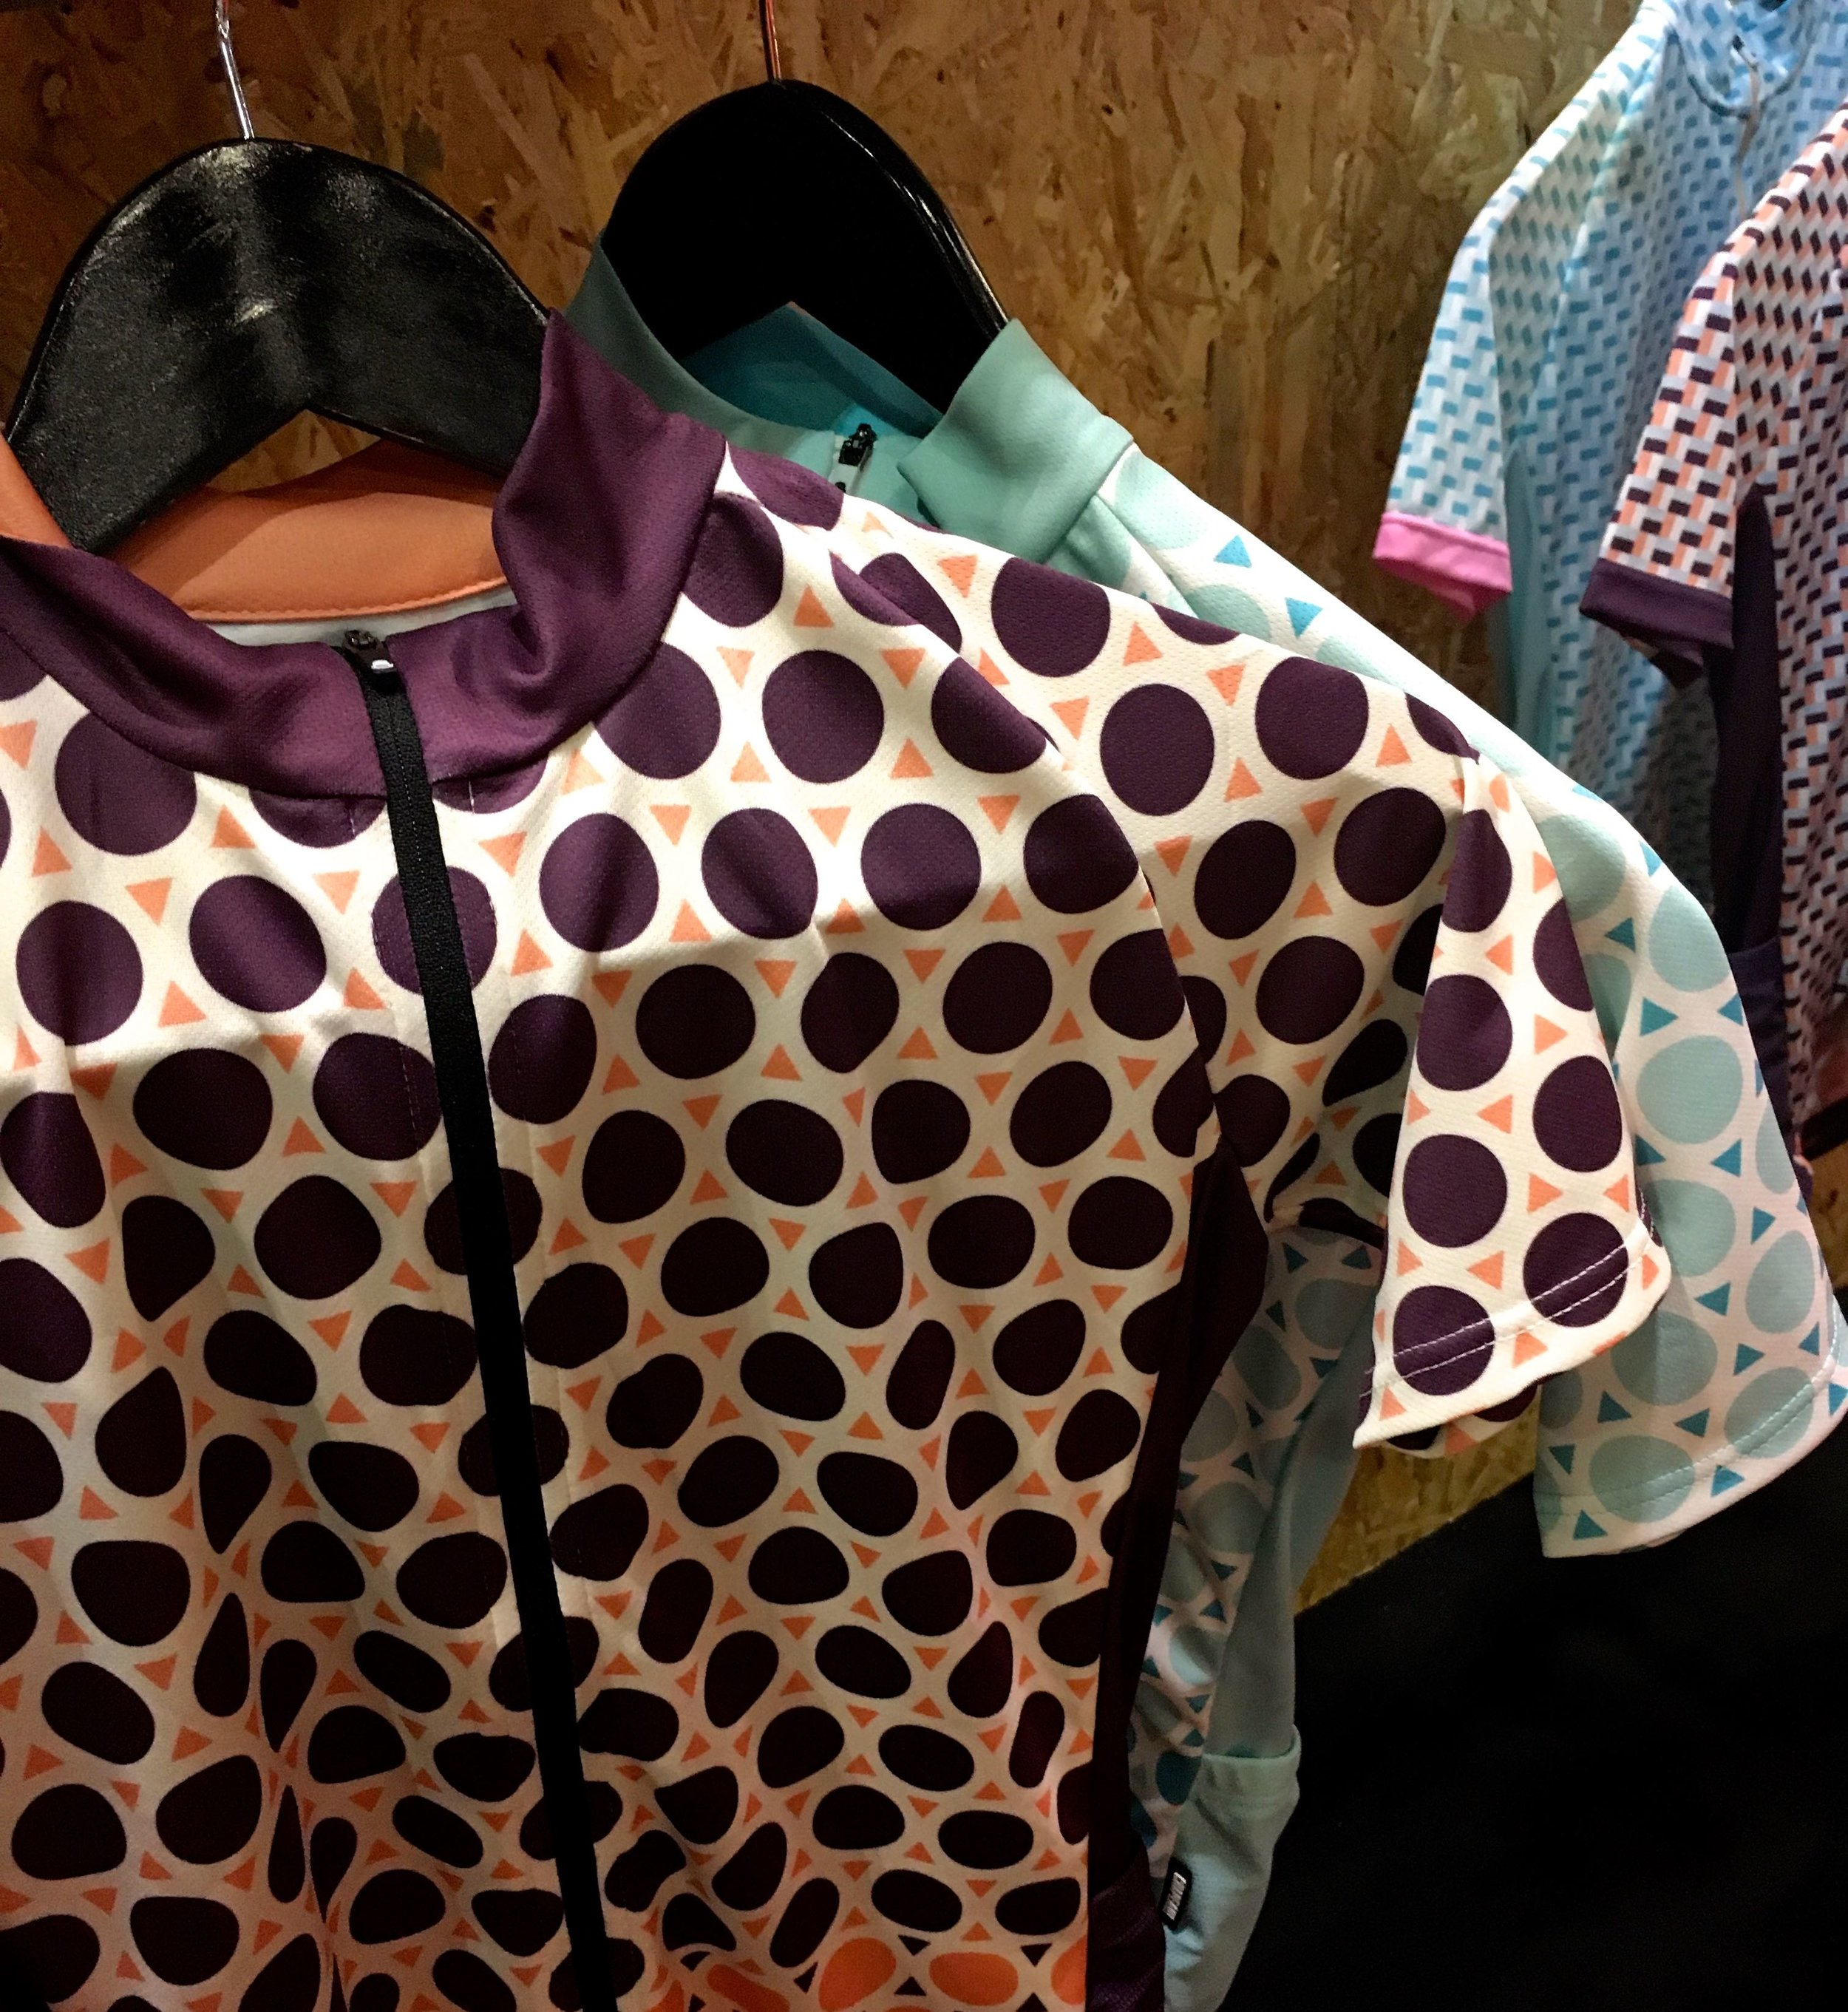 female cycling gear by Chappeau at the London Bike Show